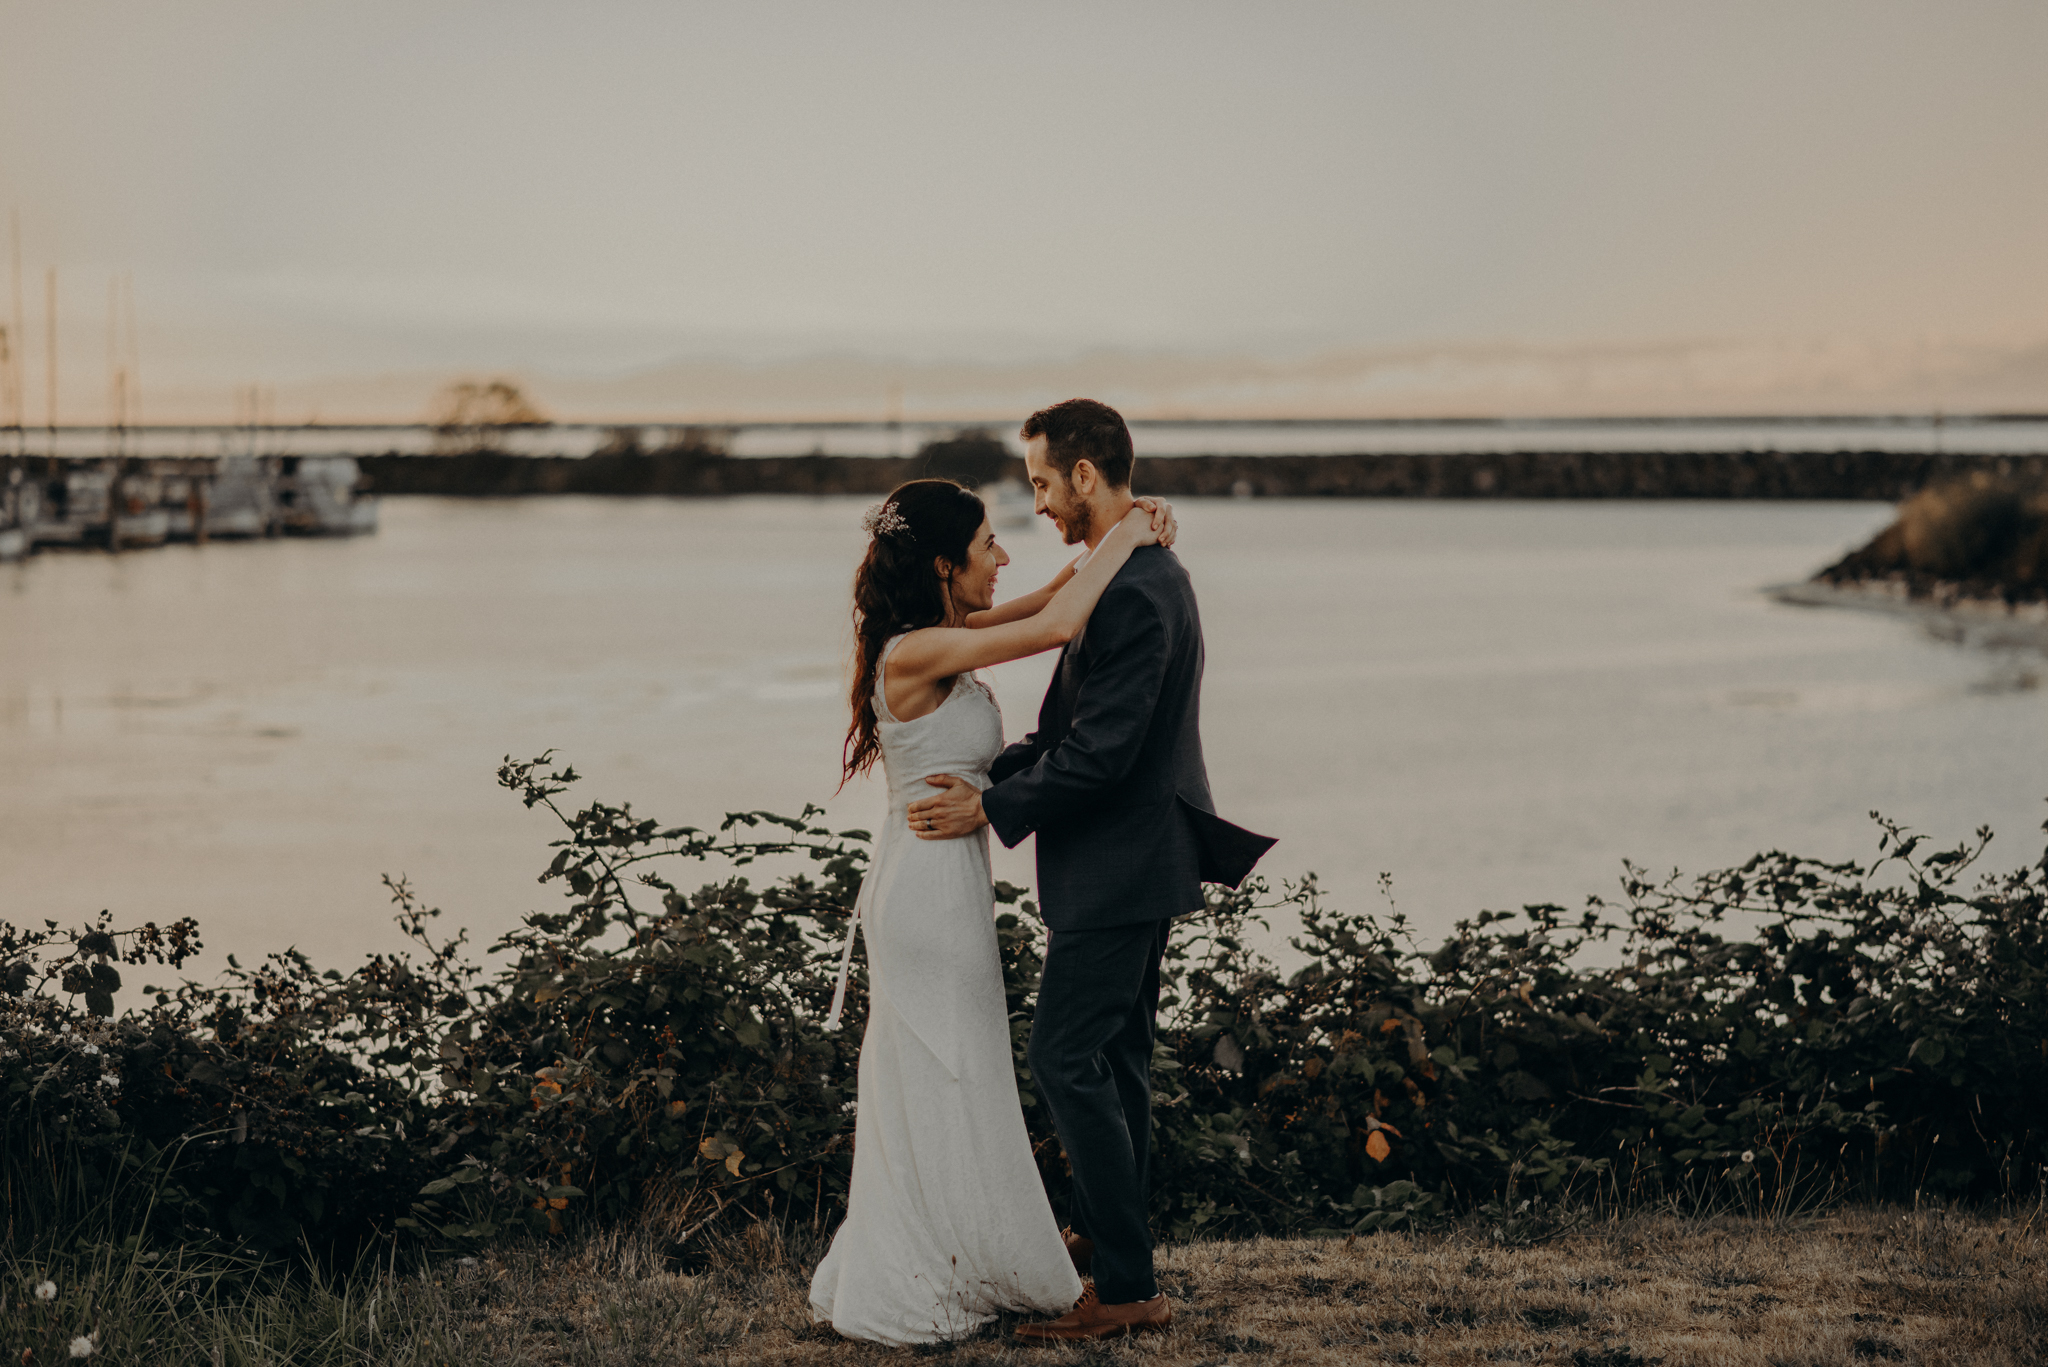 Isaiah + Taylor Photography - Cape Flattery Elopement, Olympia National Forest Wedding Photographer-127.jpg